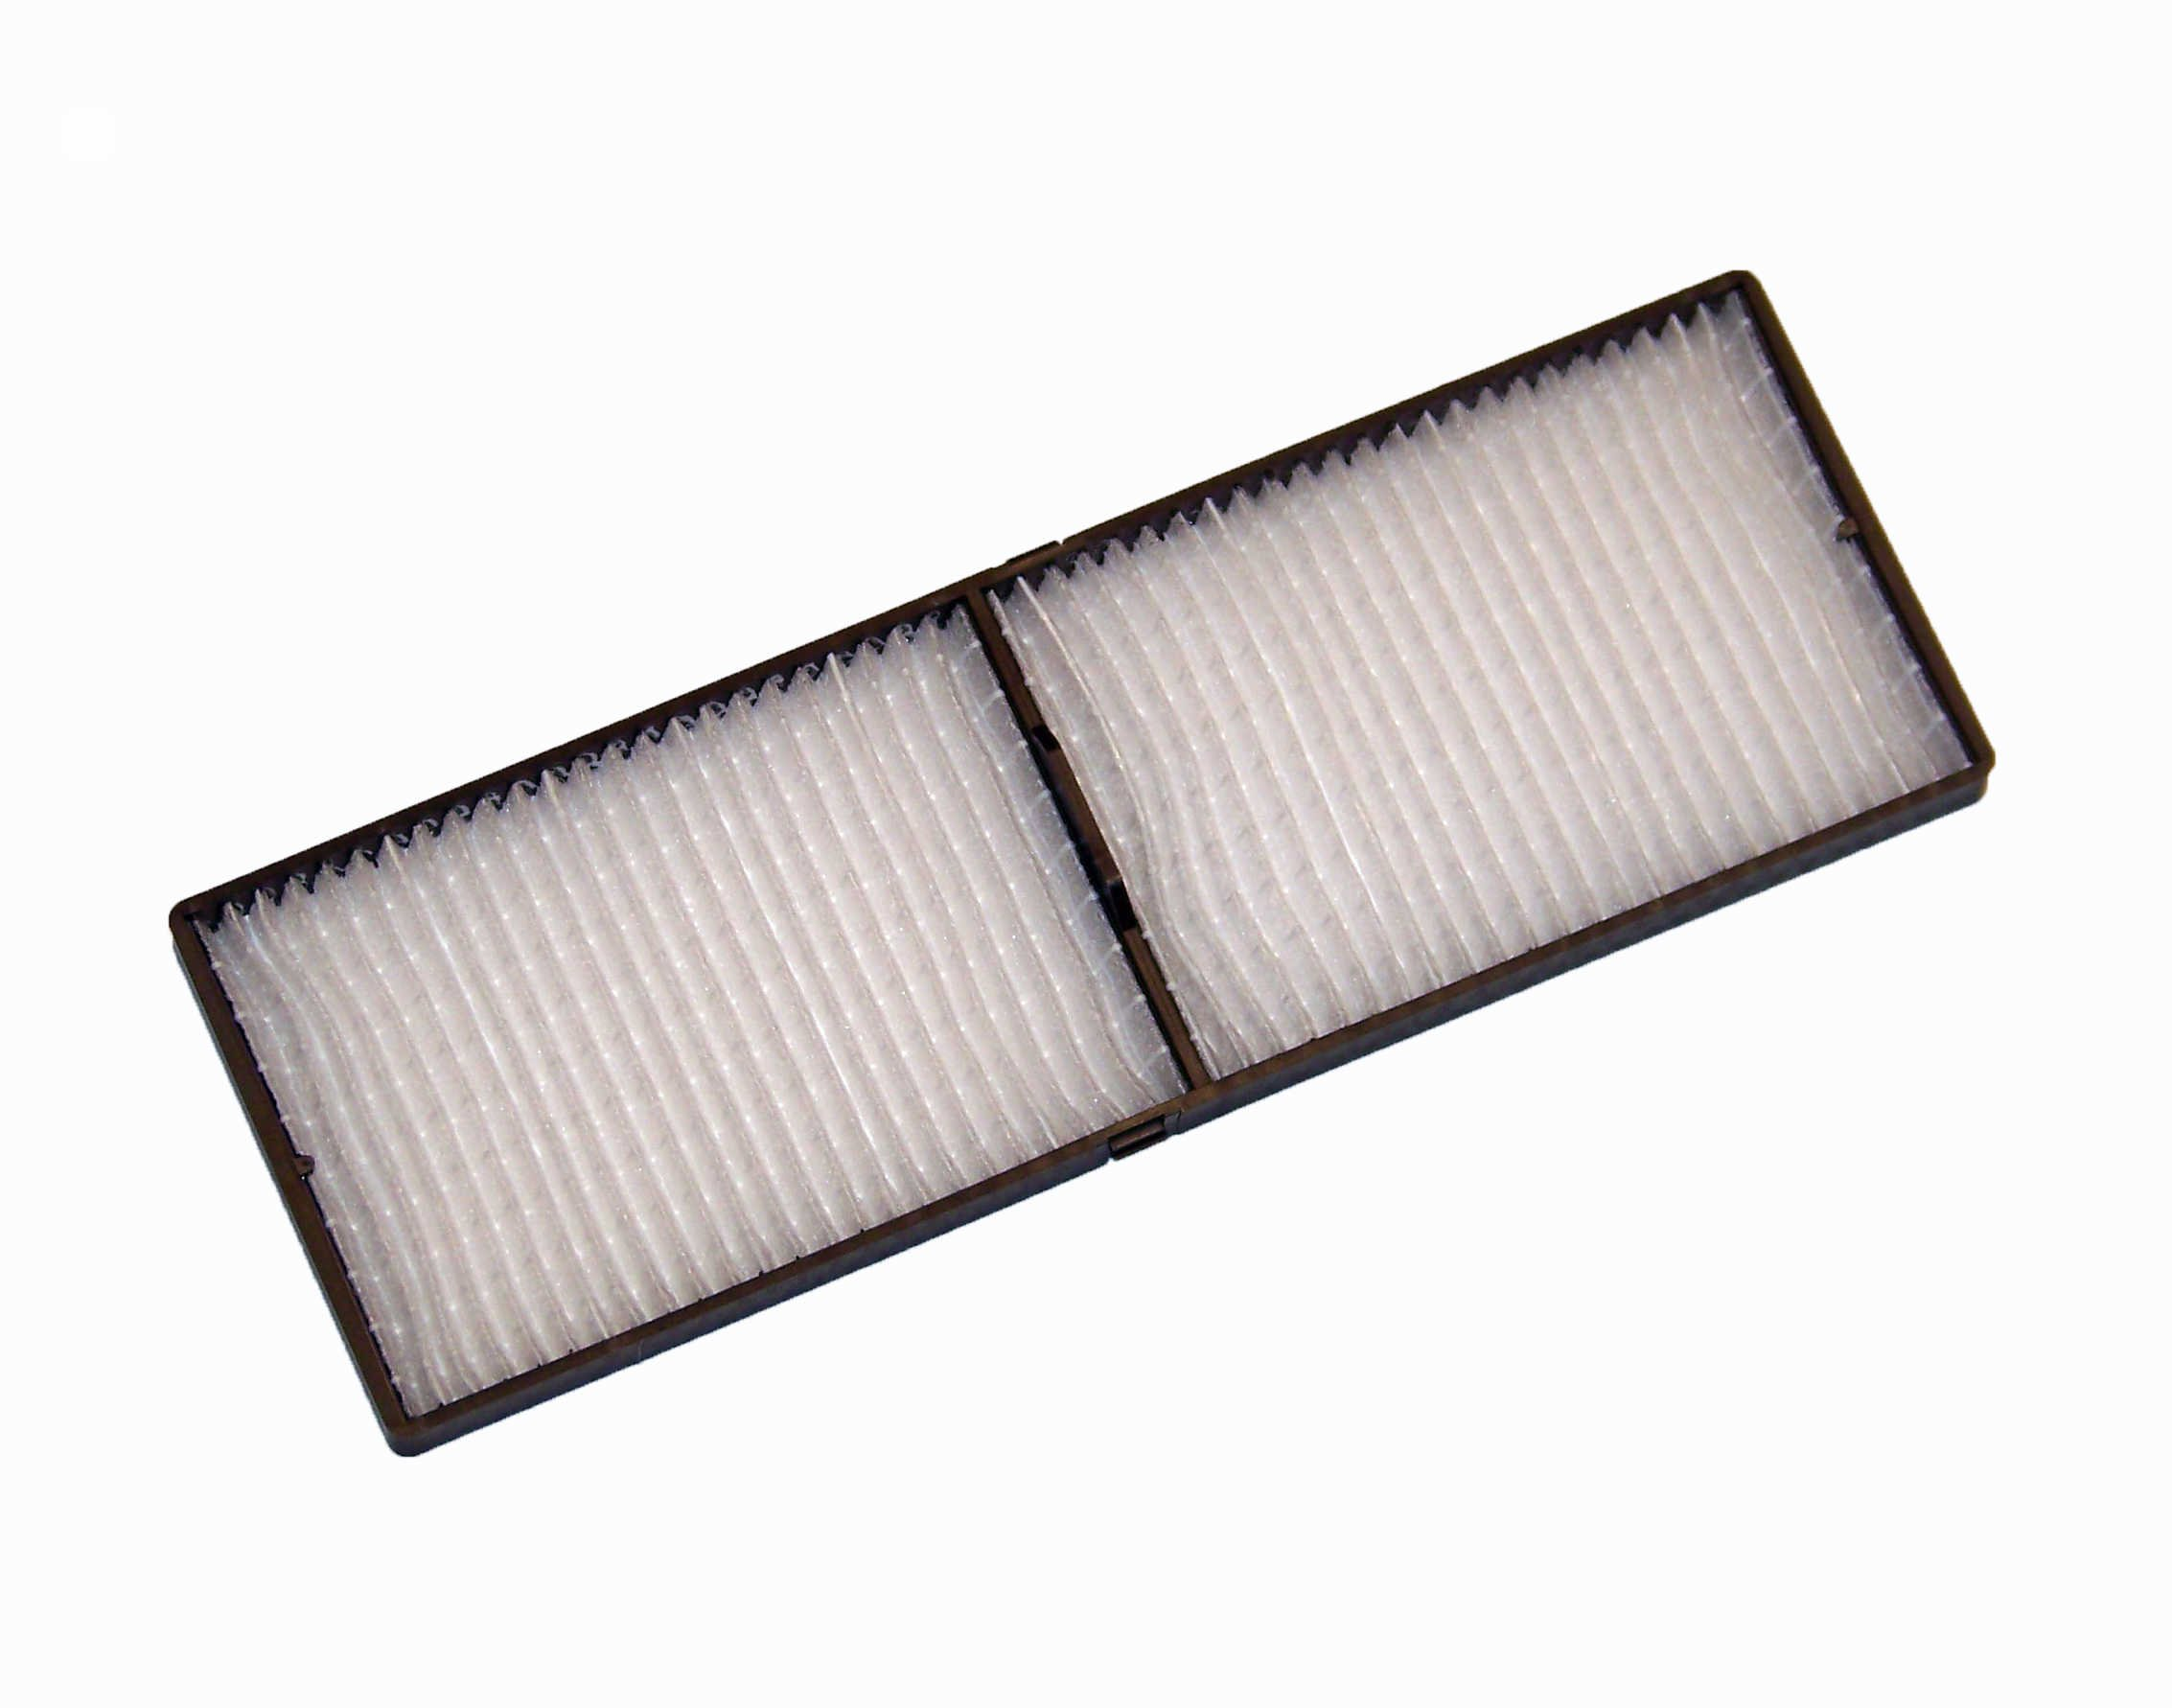 OEM Epson Projector Air Filter For Epson PowerLite Home Cinema 1450, PowerLite Home Cinema 975W